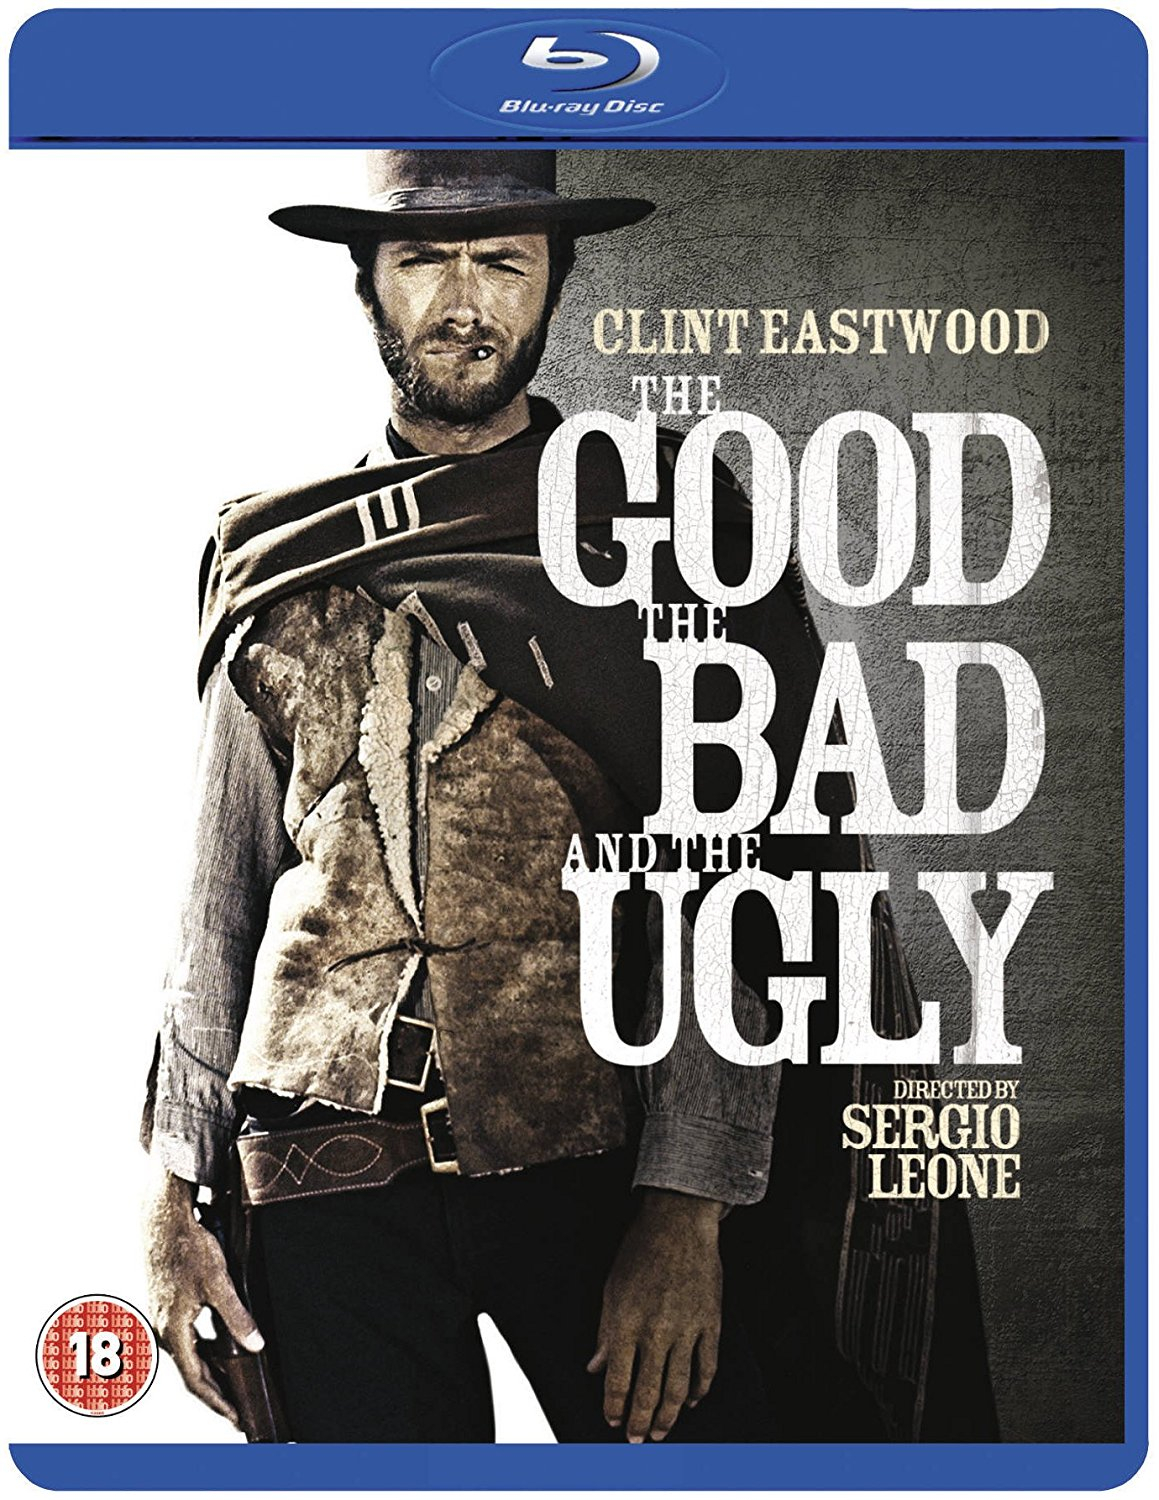 Buy The Good, The Bad and the Ugly - Blu-Ray